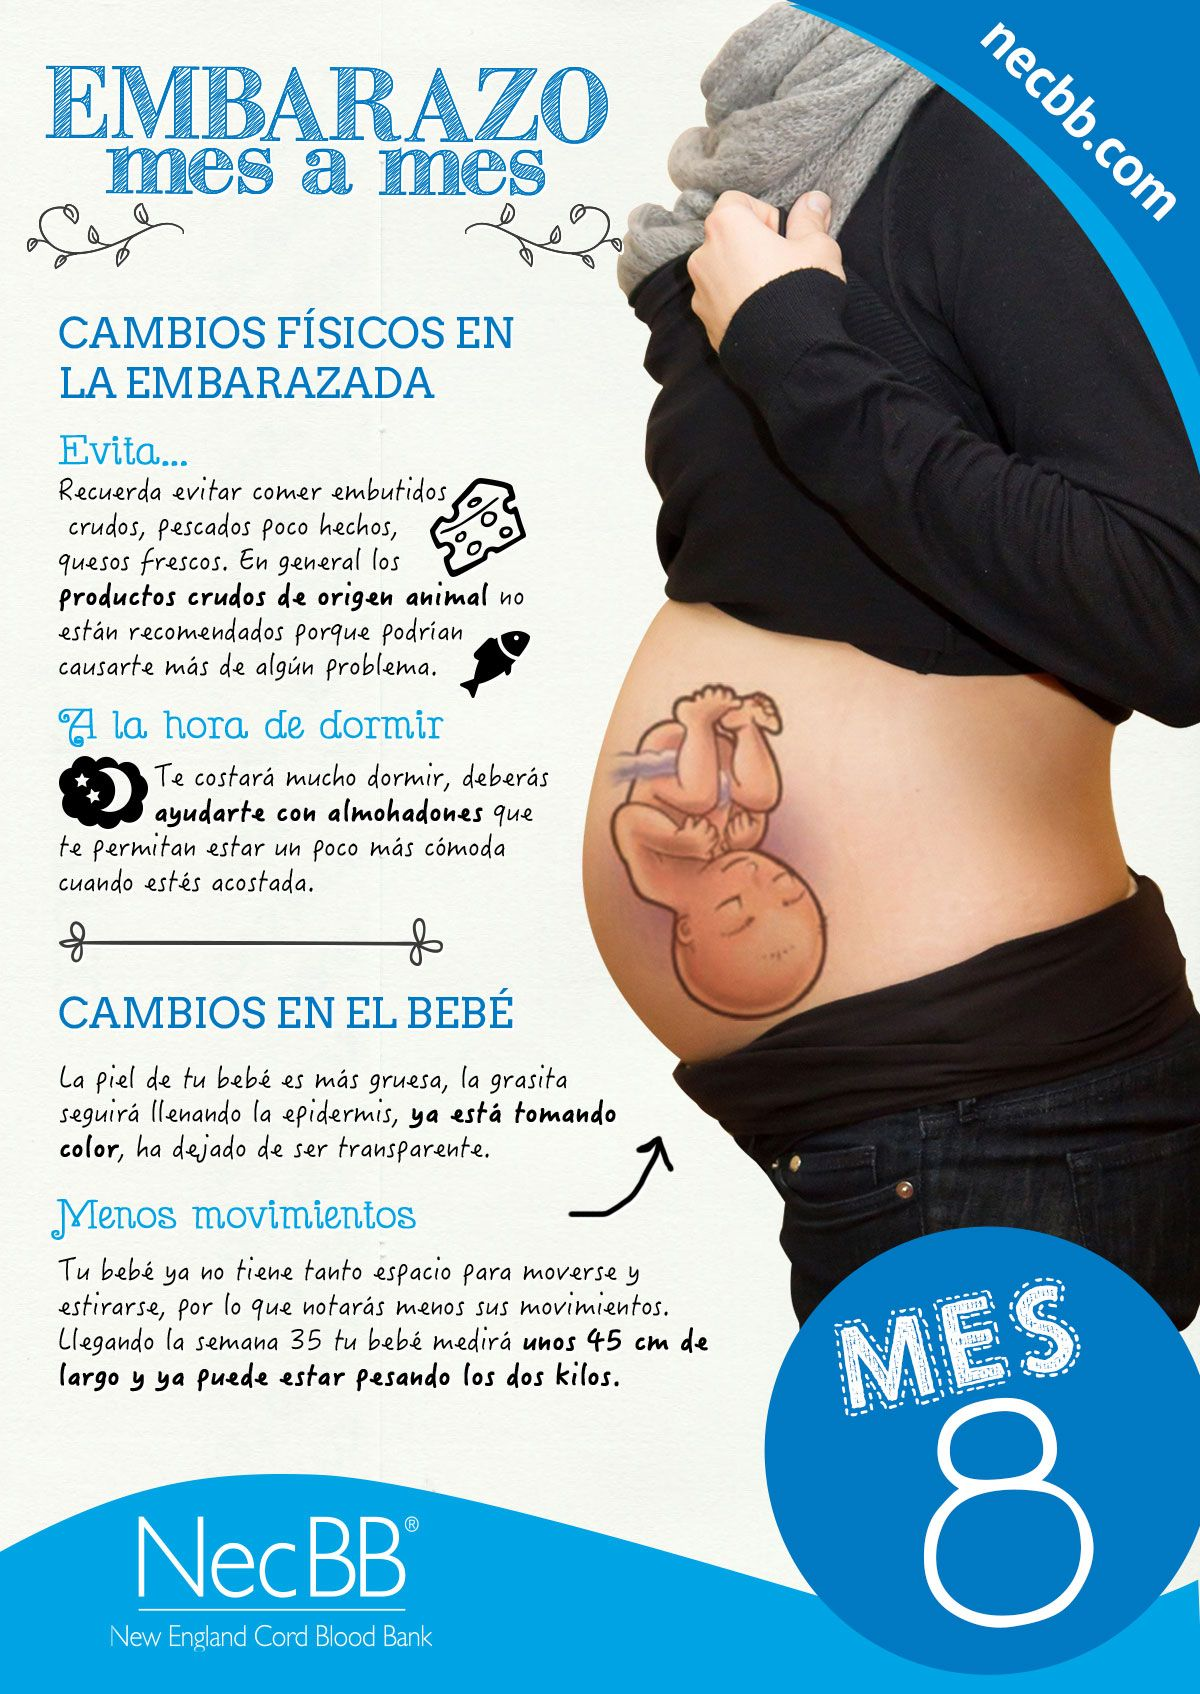 Pin By Tip Salud On Embarazo Mes A Mes Fotos Y Frases Pregnancy